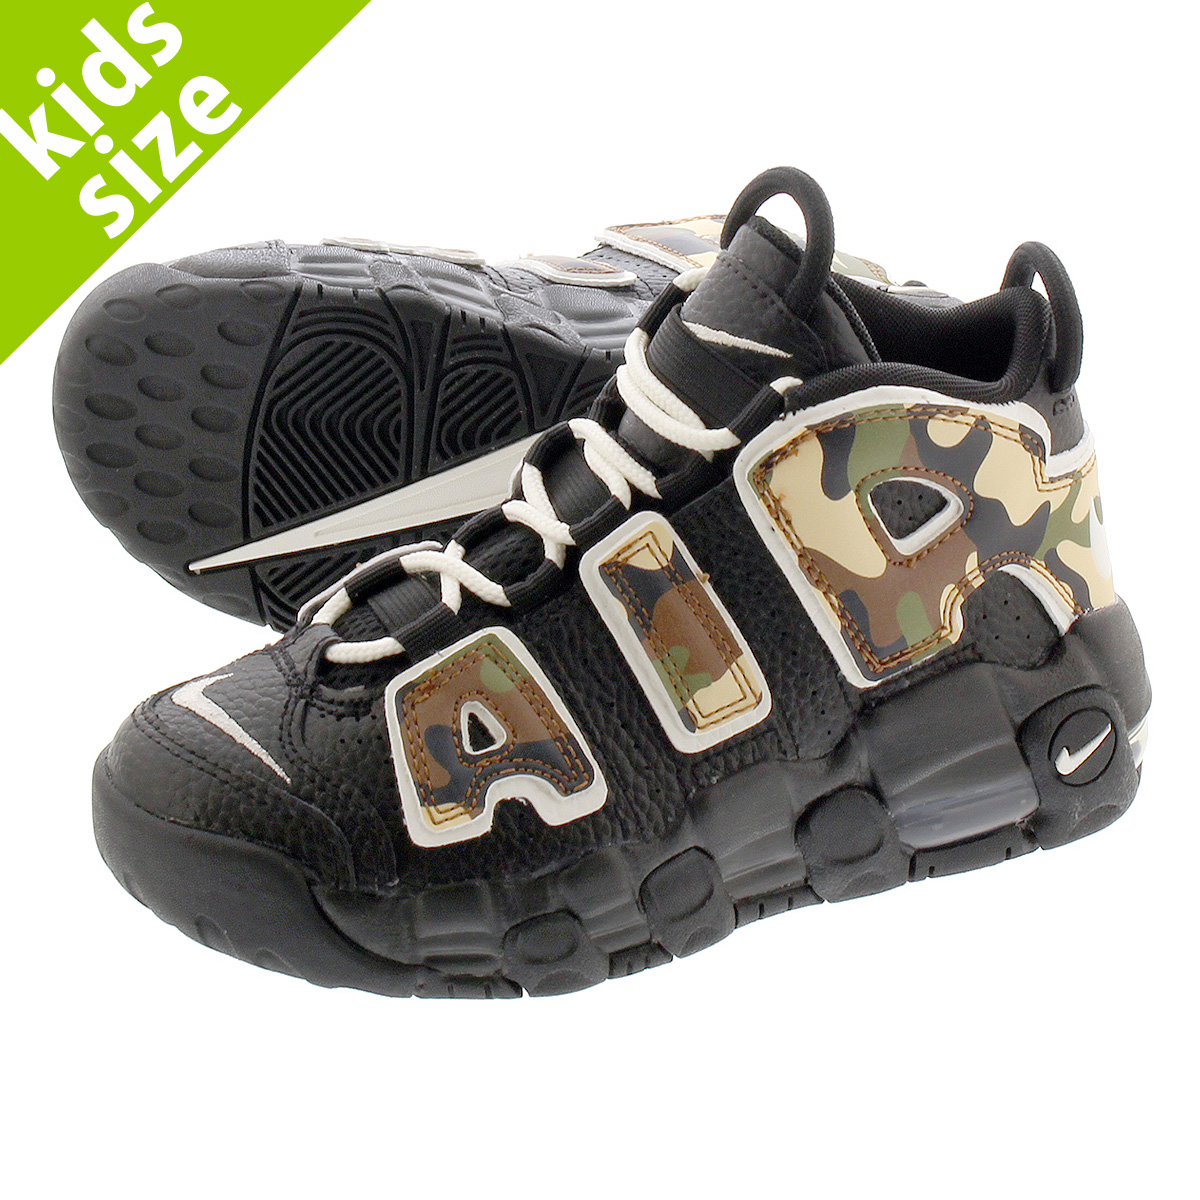 【キッズサイズ】【16.0~22.0cm】 NIKE AIR MORE UPTEMPO PS 【BLACK CAMO】 ナイキ モア アップ テンポ PS BLACK/SAIL/LIGHT BRITISH TAN/ASPARAGUS cj0931-001